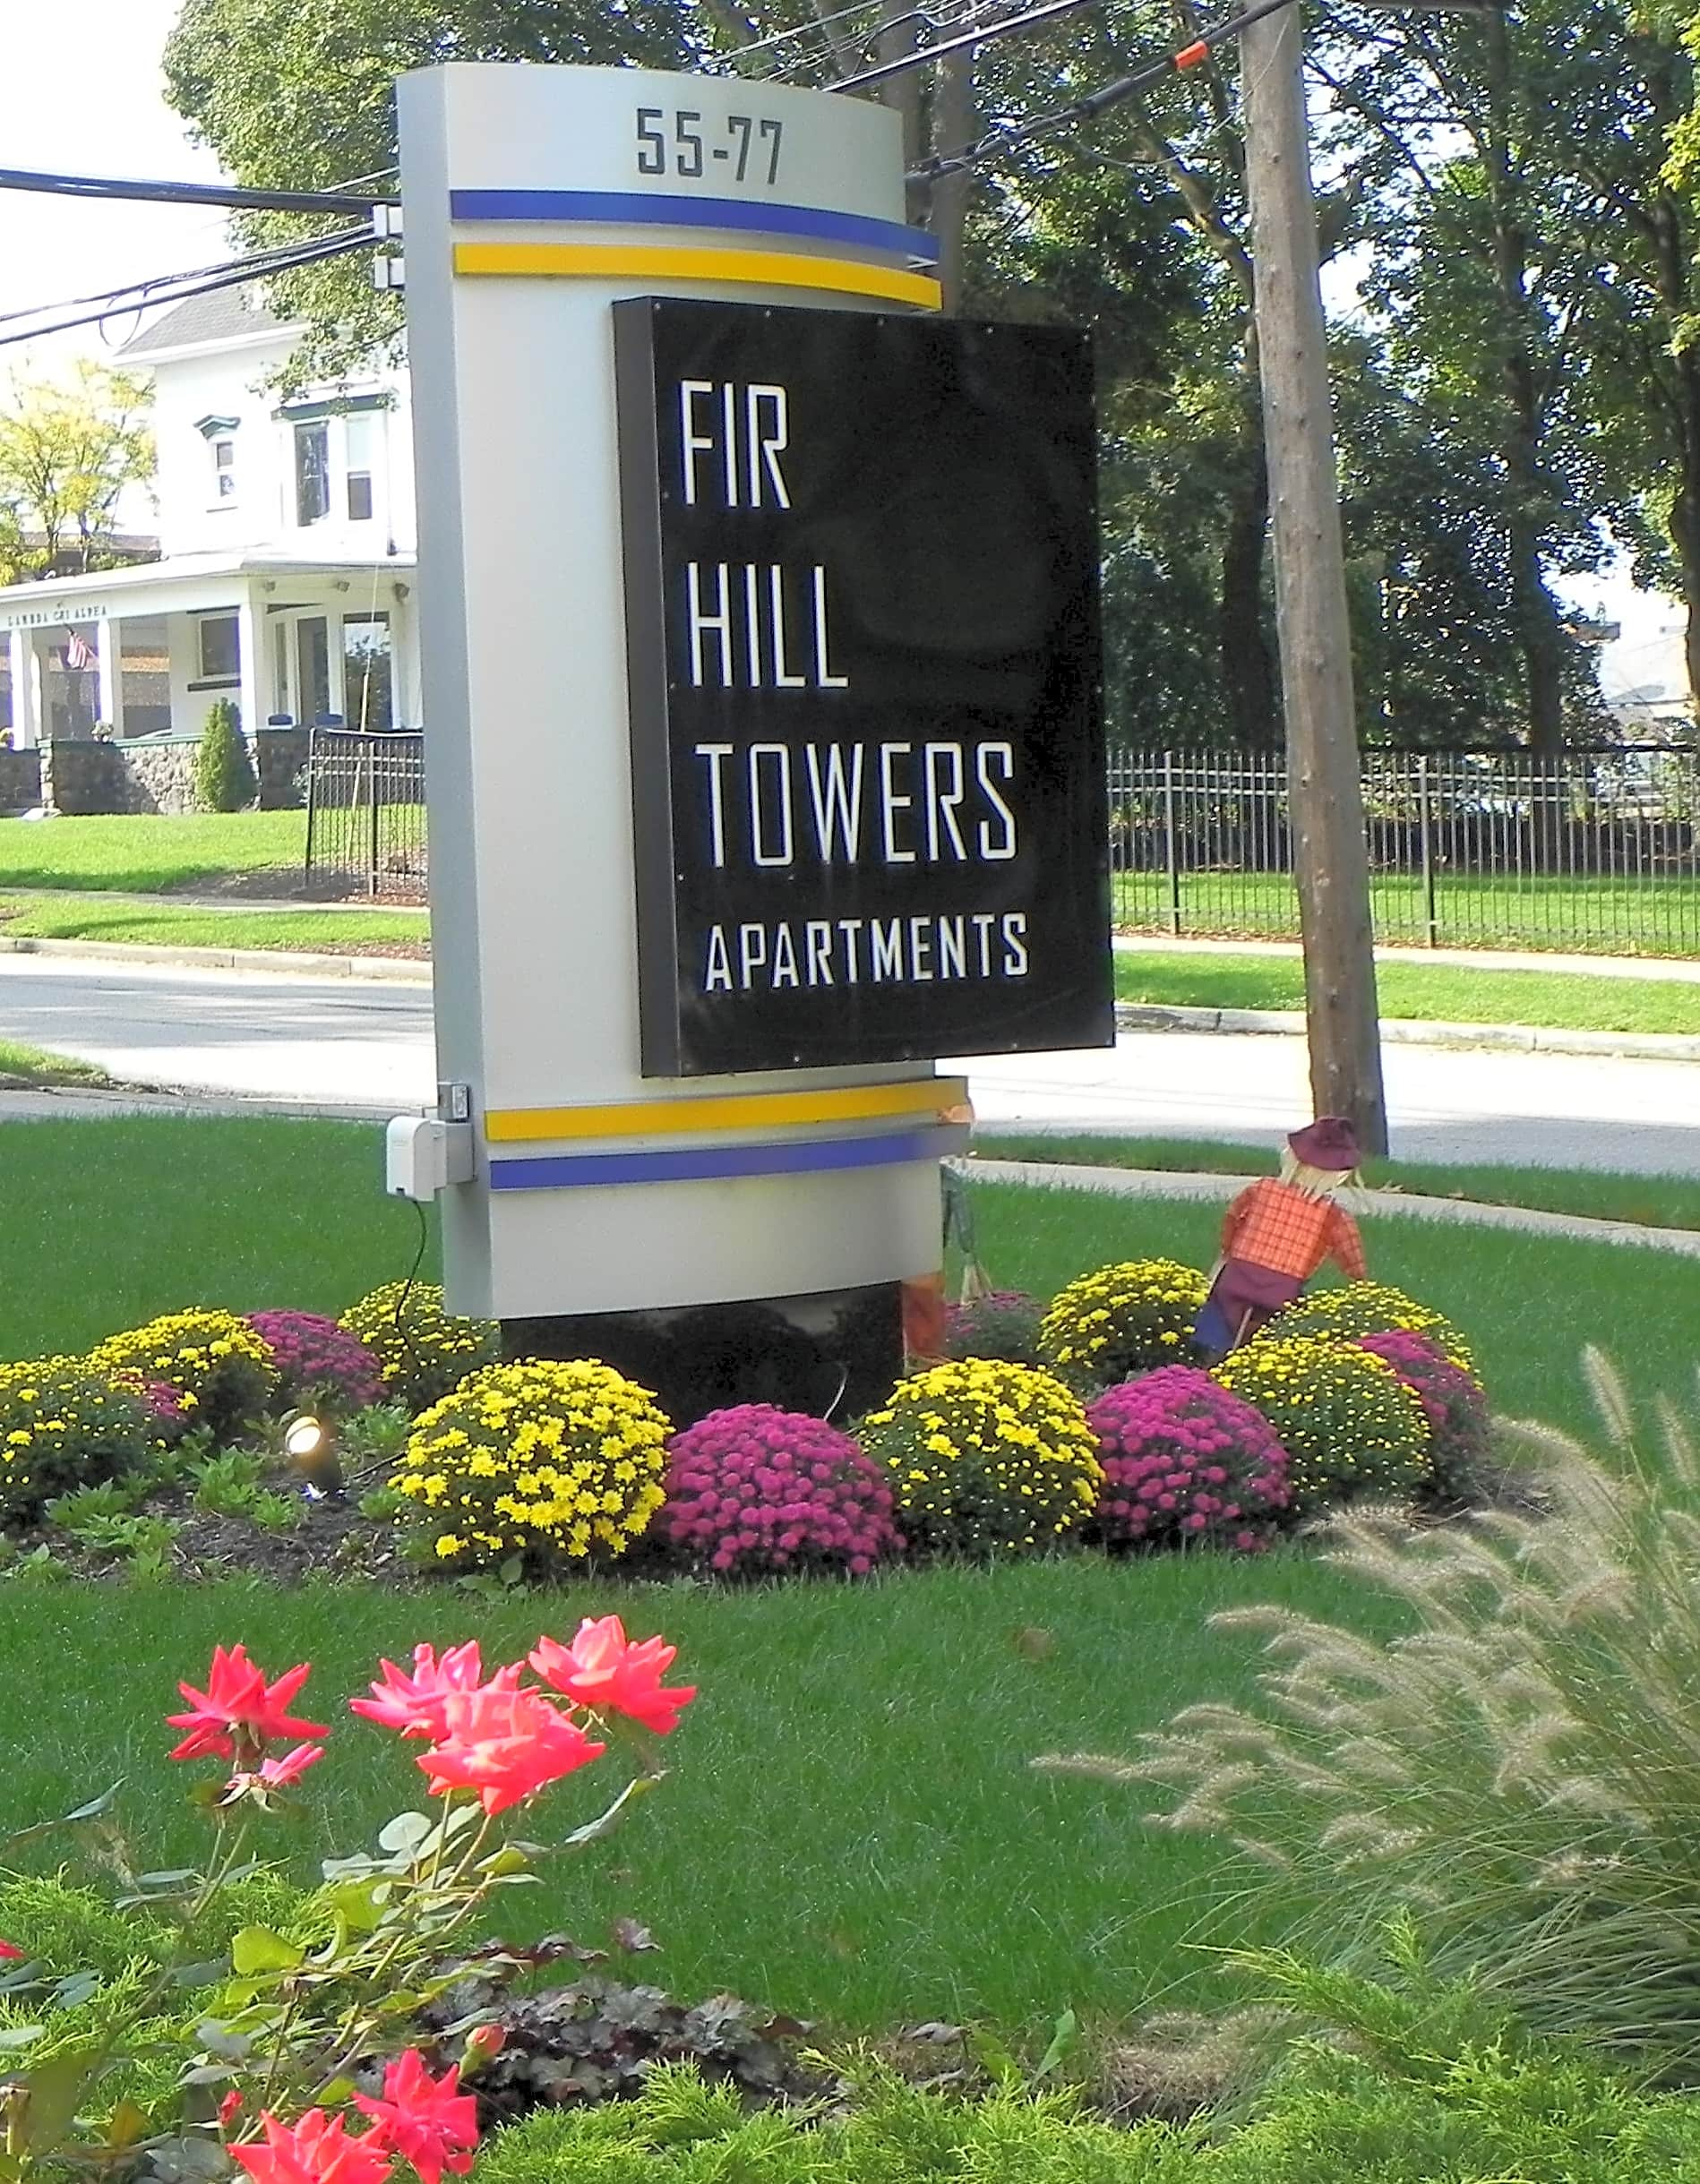 Apartments Near Akron Fir Hill Towers for University of Akron Students in Akron, OH